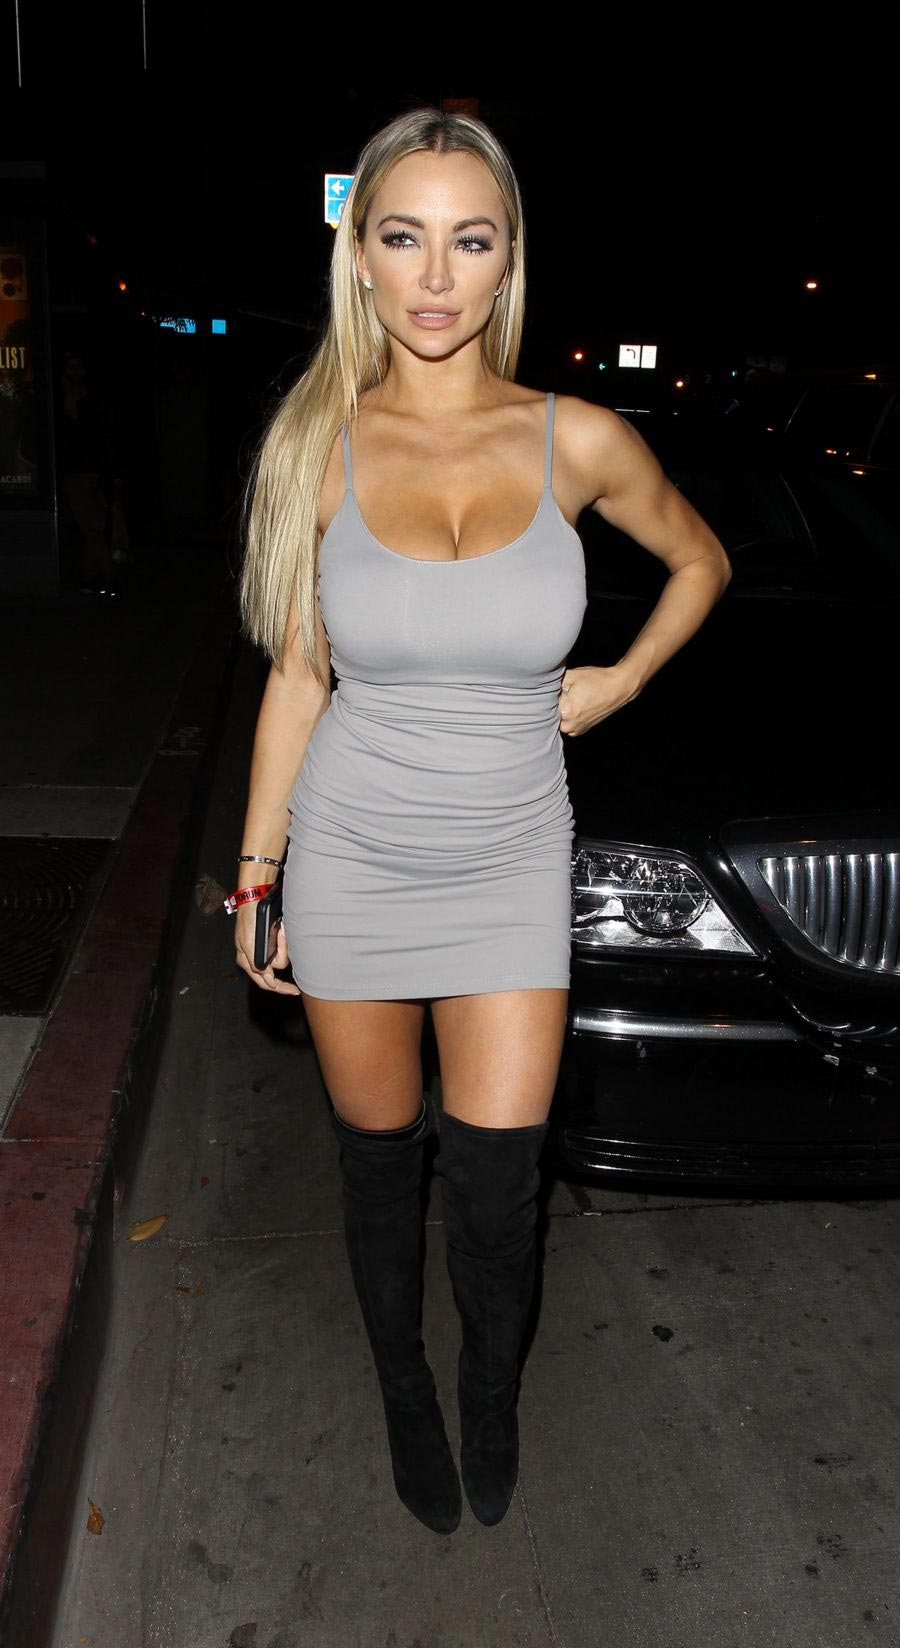 lindsey-pelas-and-her-cleavage-went-clubbing4